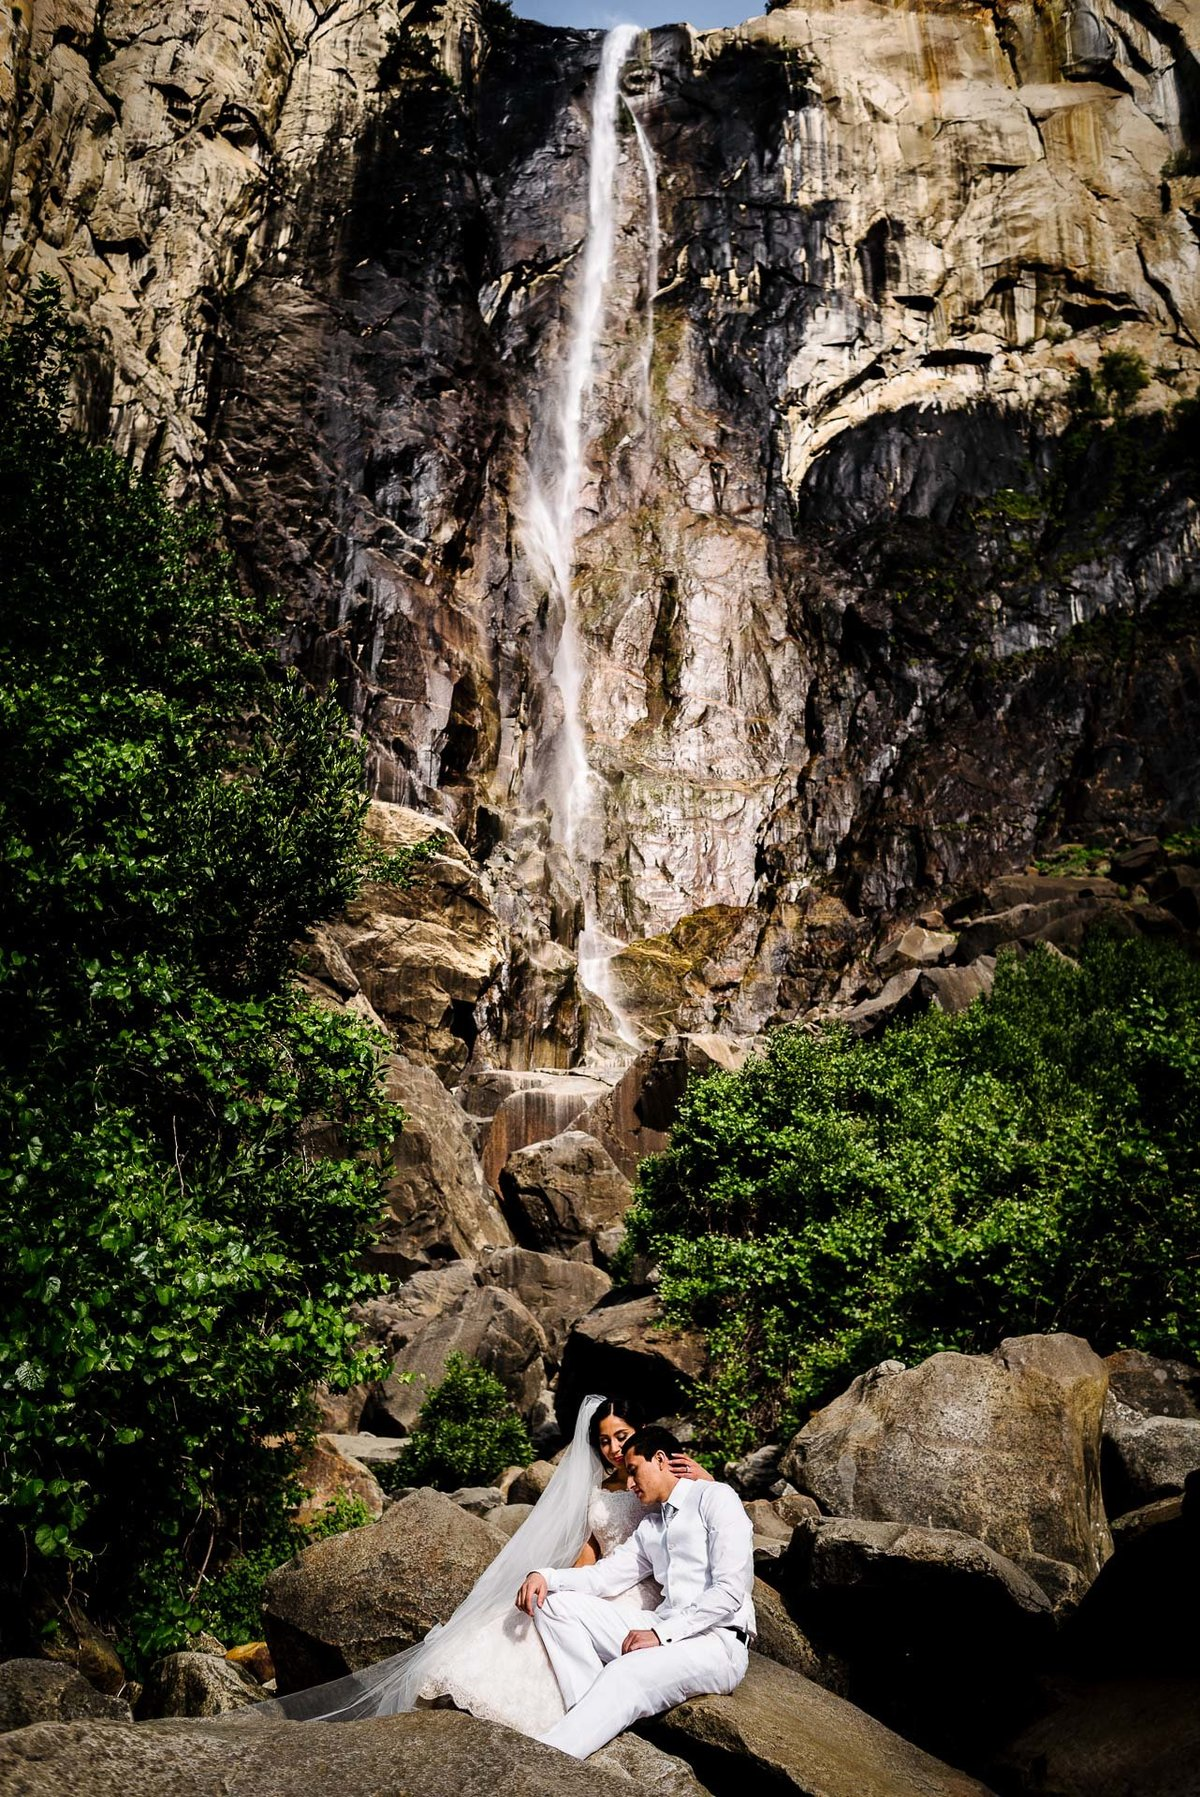 bridal portrait in front of bridal waterfall  aT YOSEMITE NATIONAL PARK